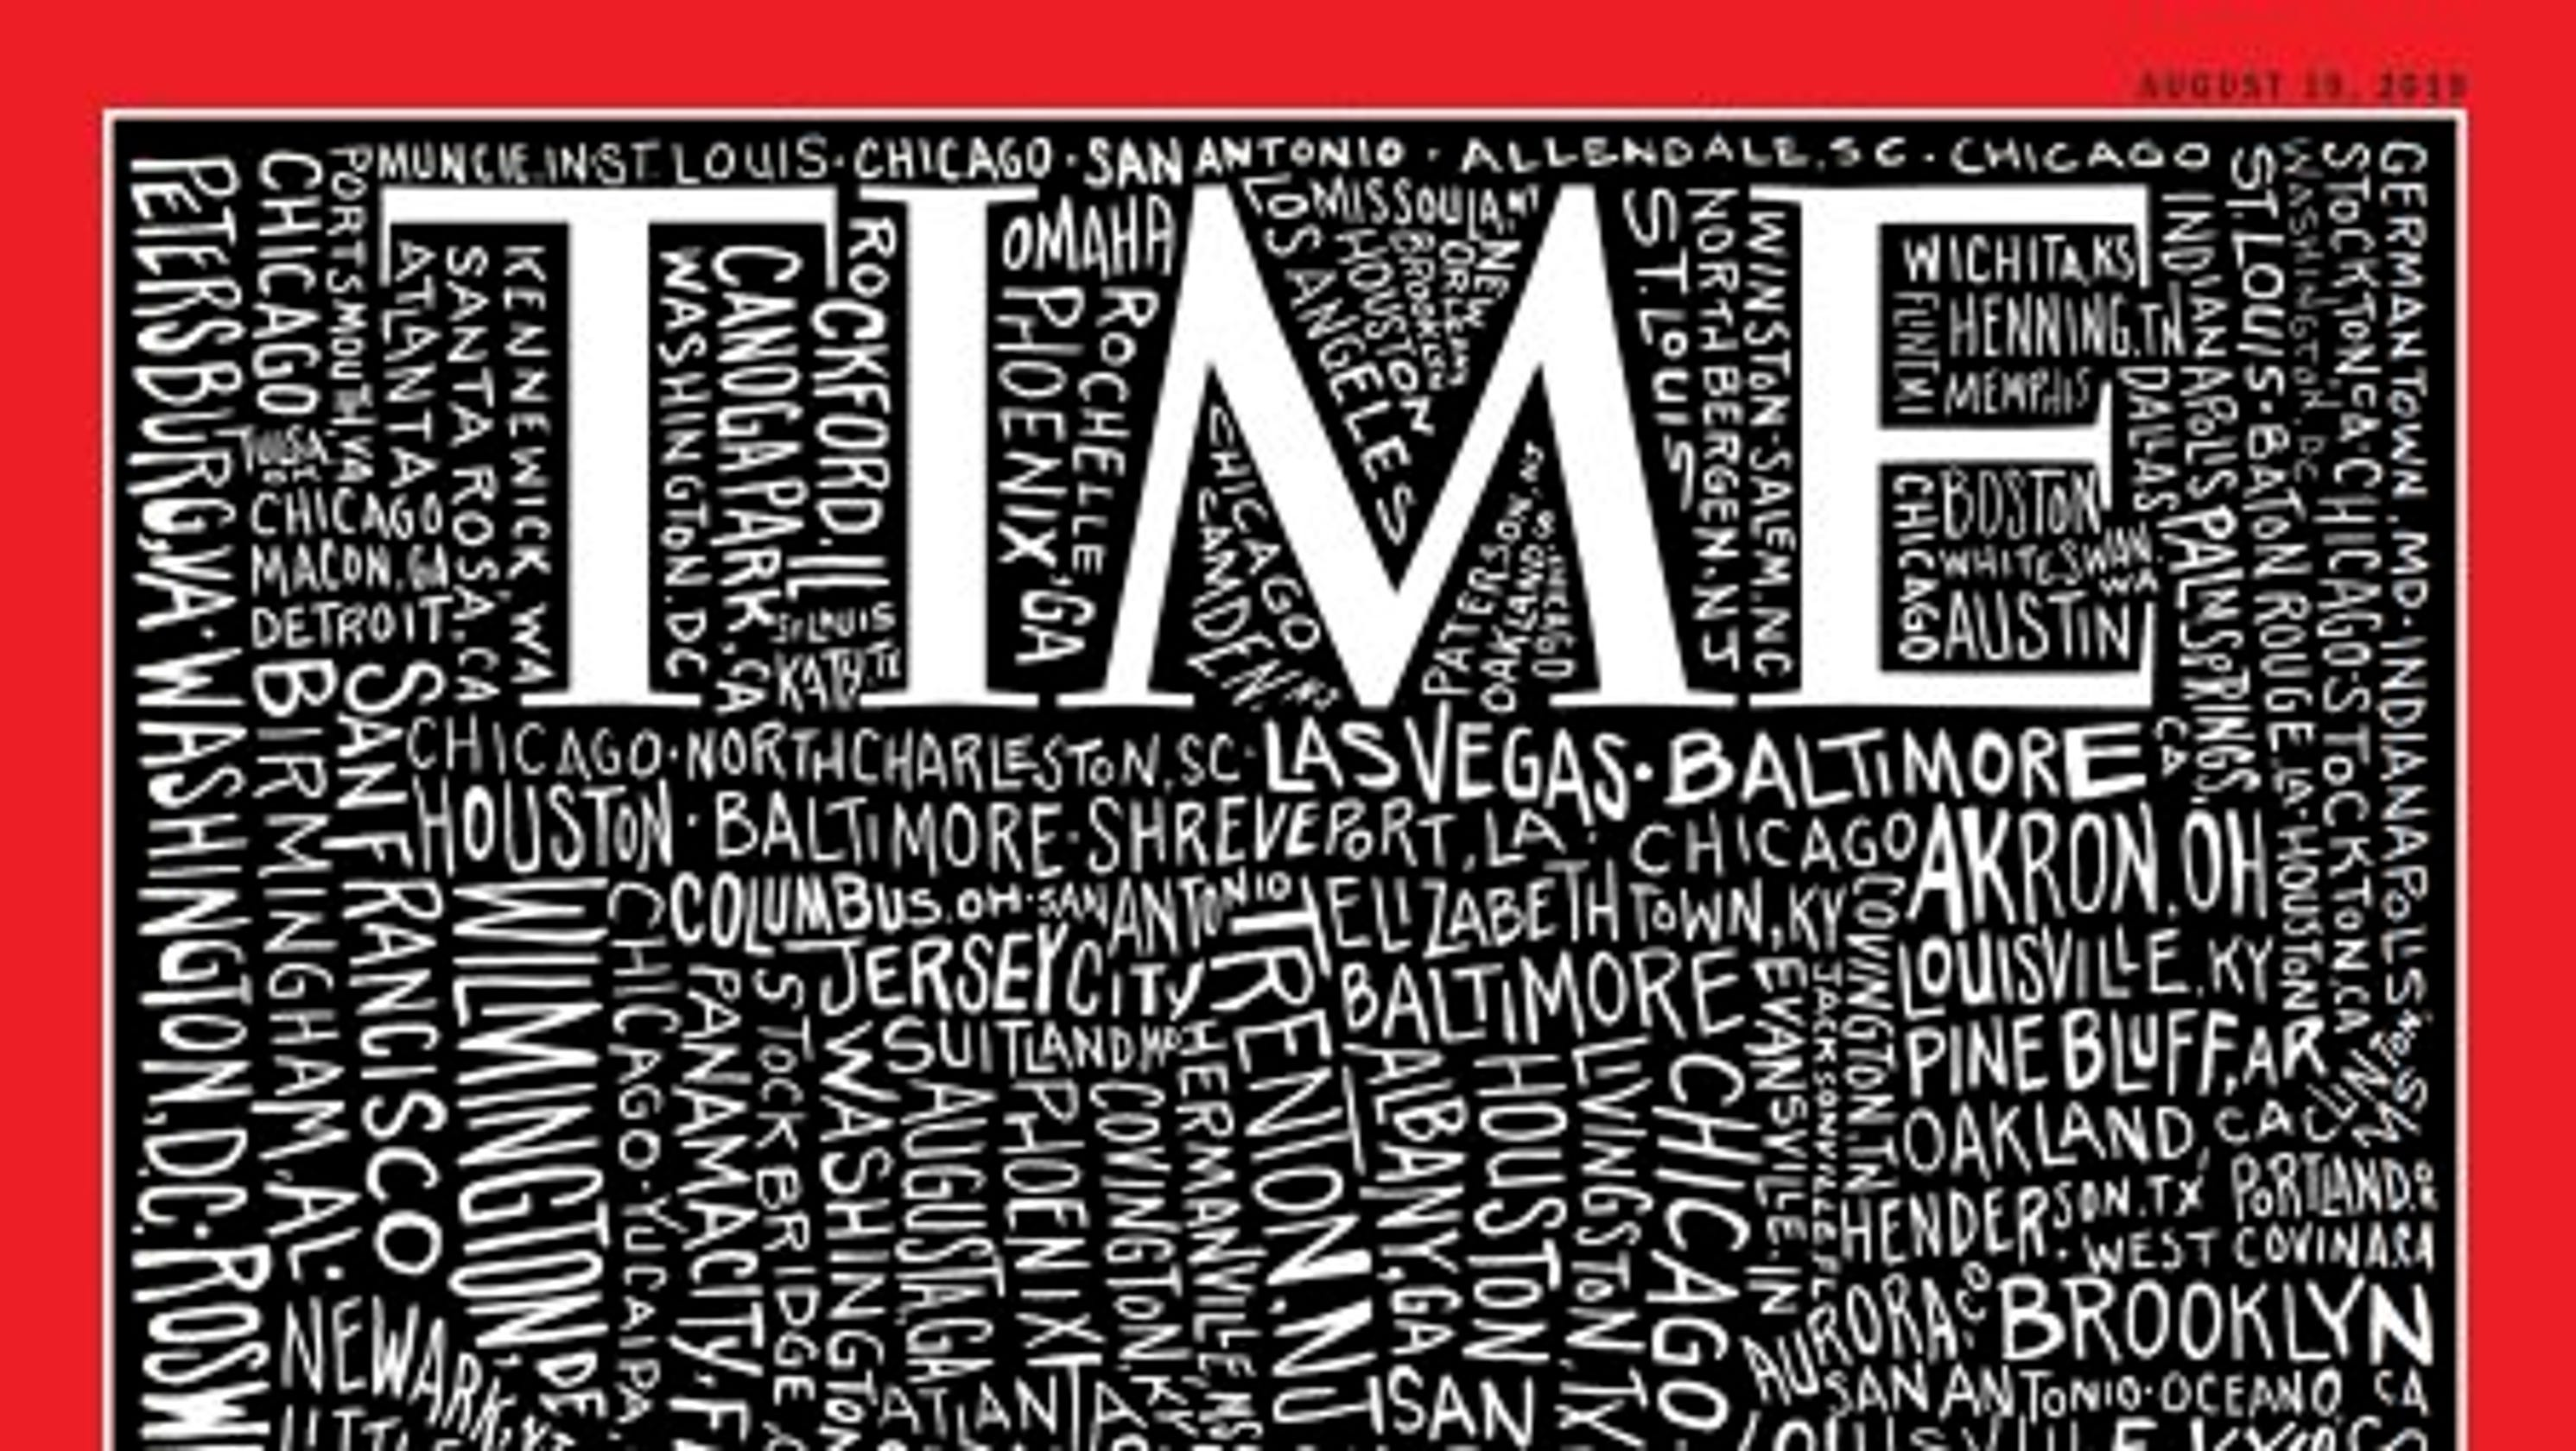 Tallahassee Included Twice On TIME Magazine Cover Declaring